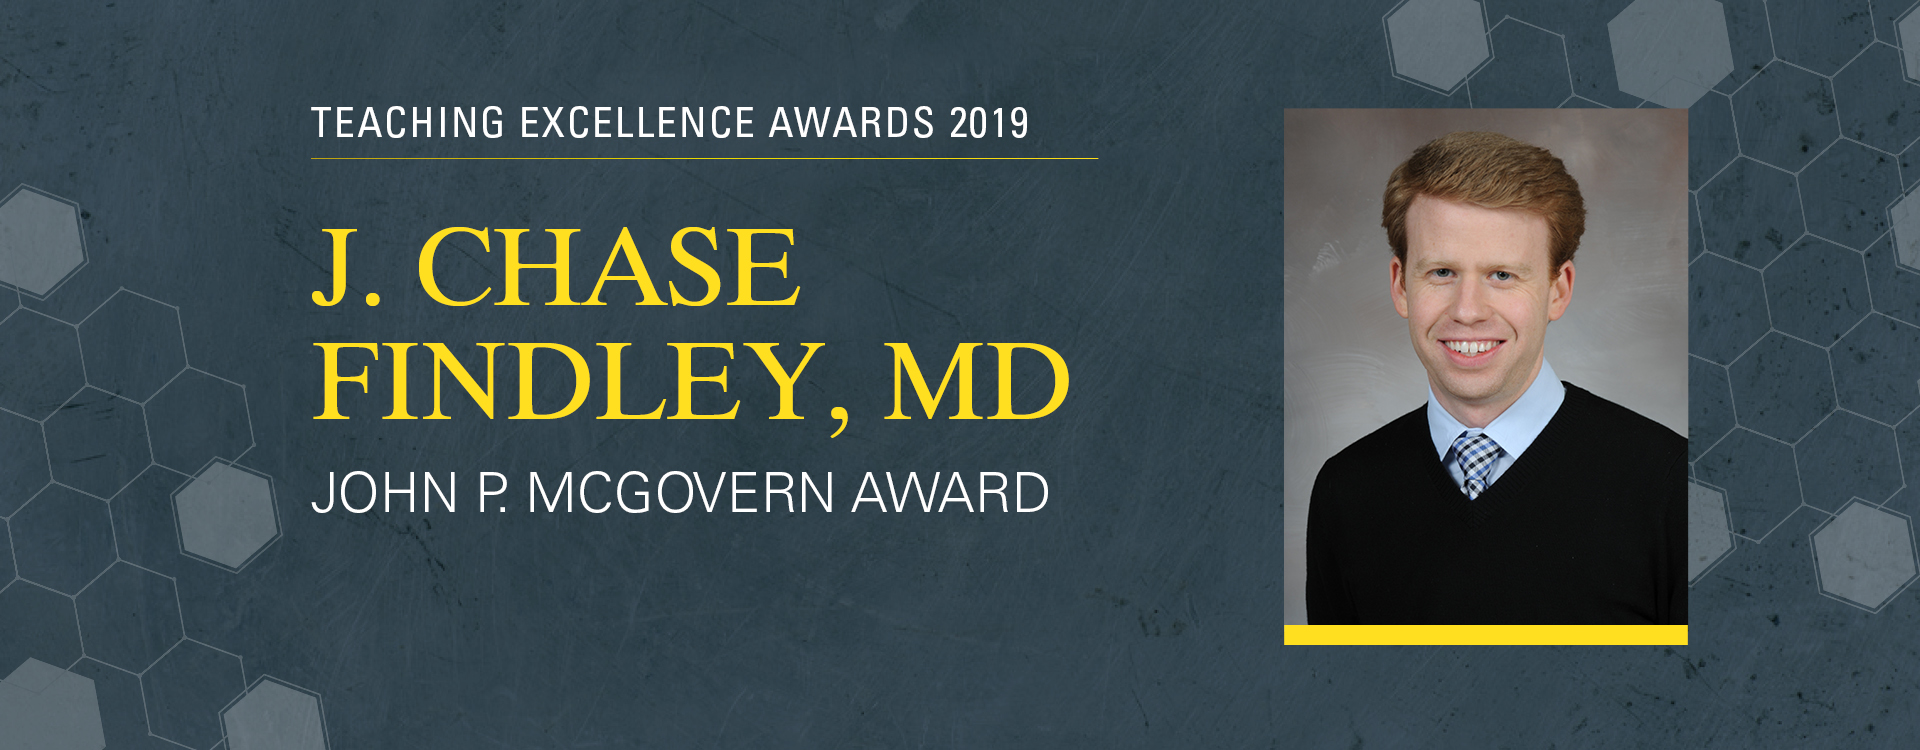 Dr. Findley Teaching Excellence Award 2019